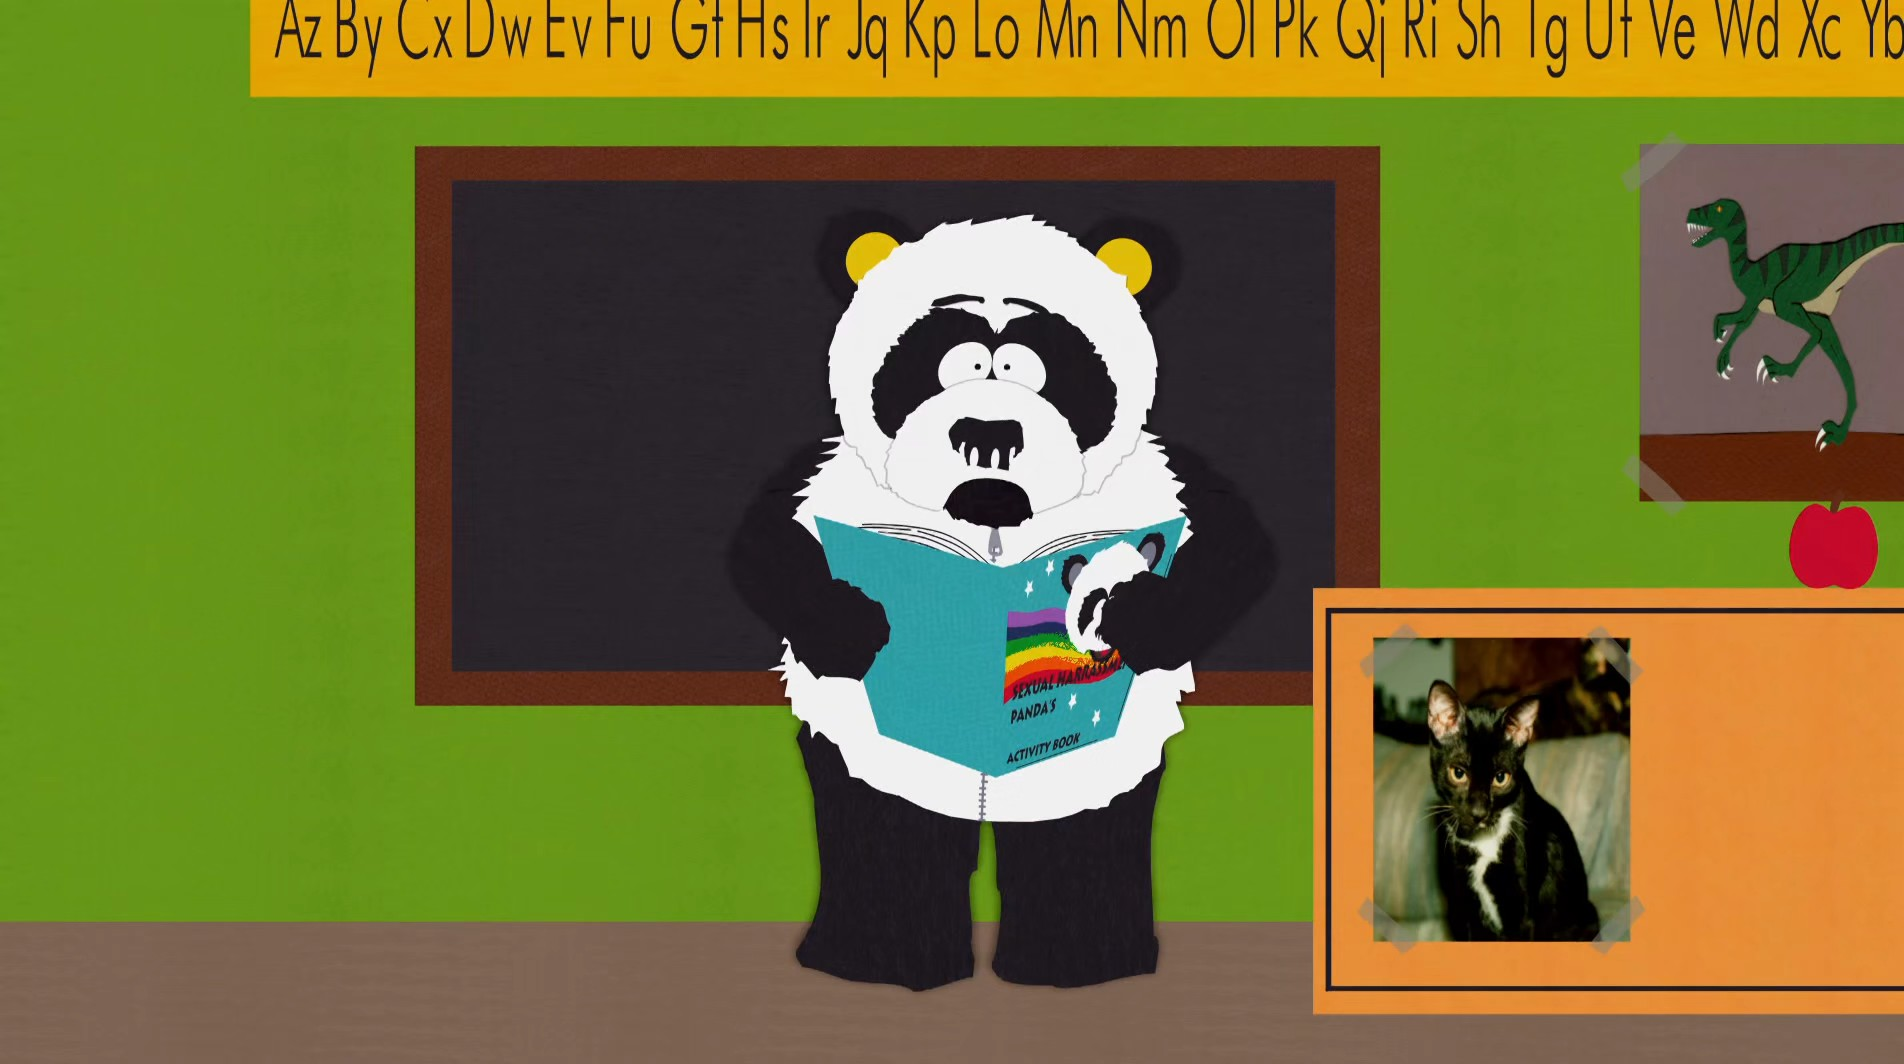 Classic South Park Episodes that are Even More Relevant Today